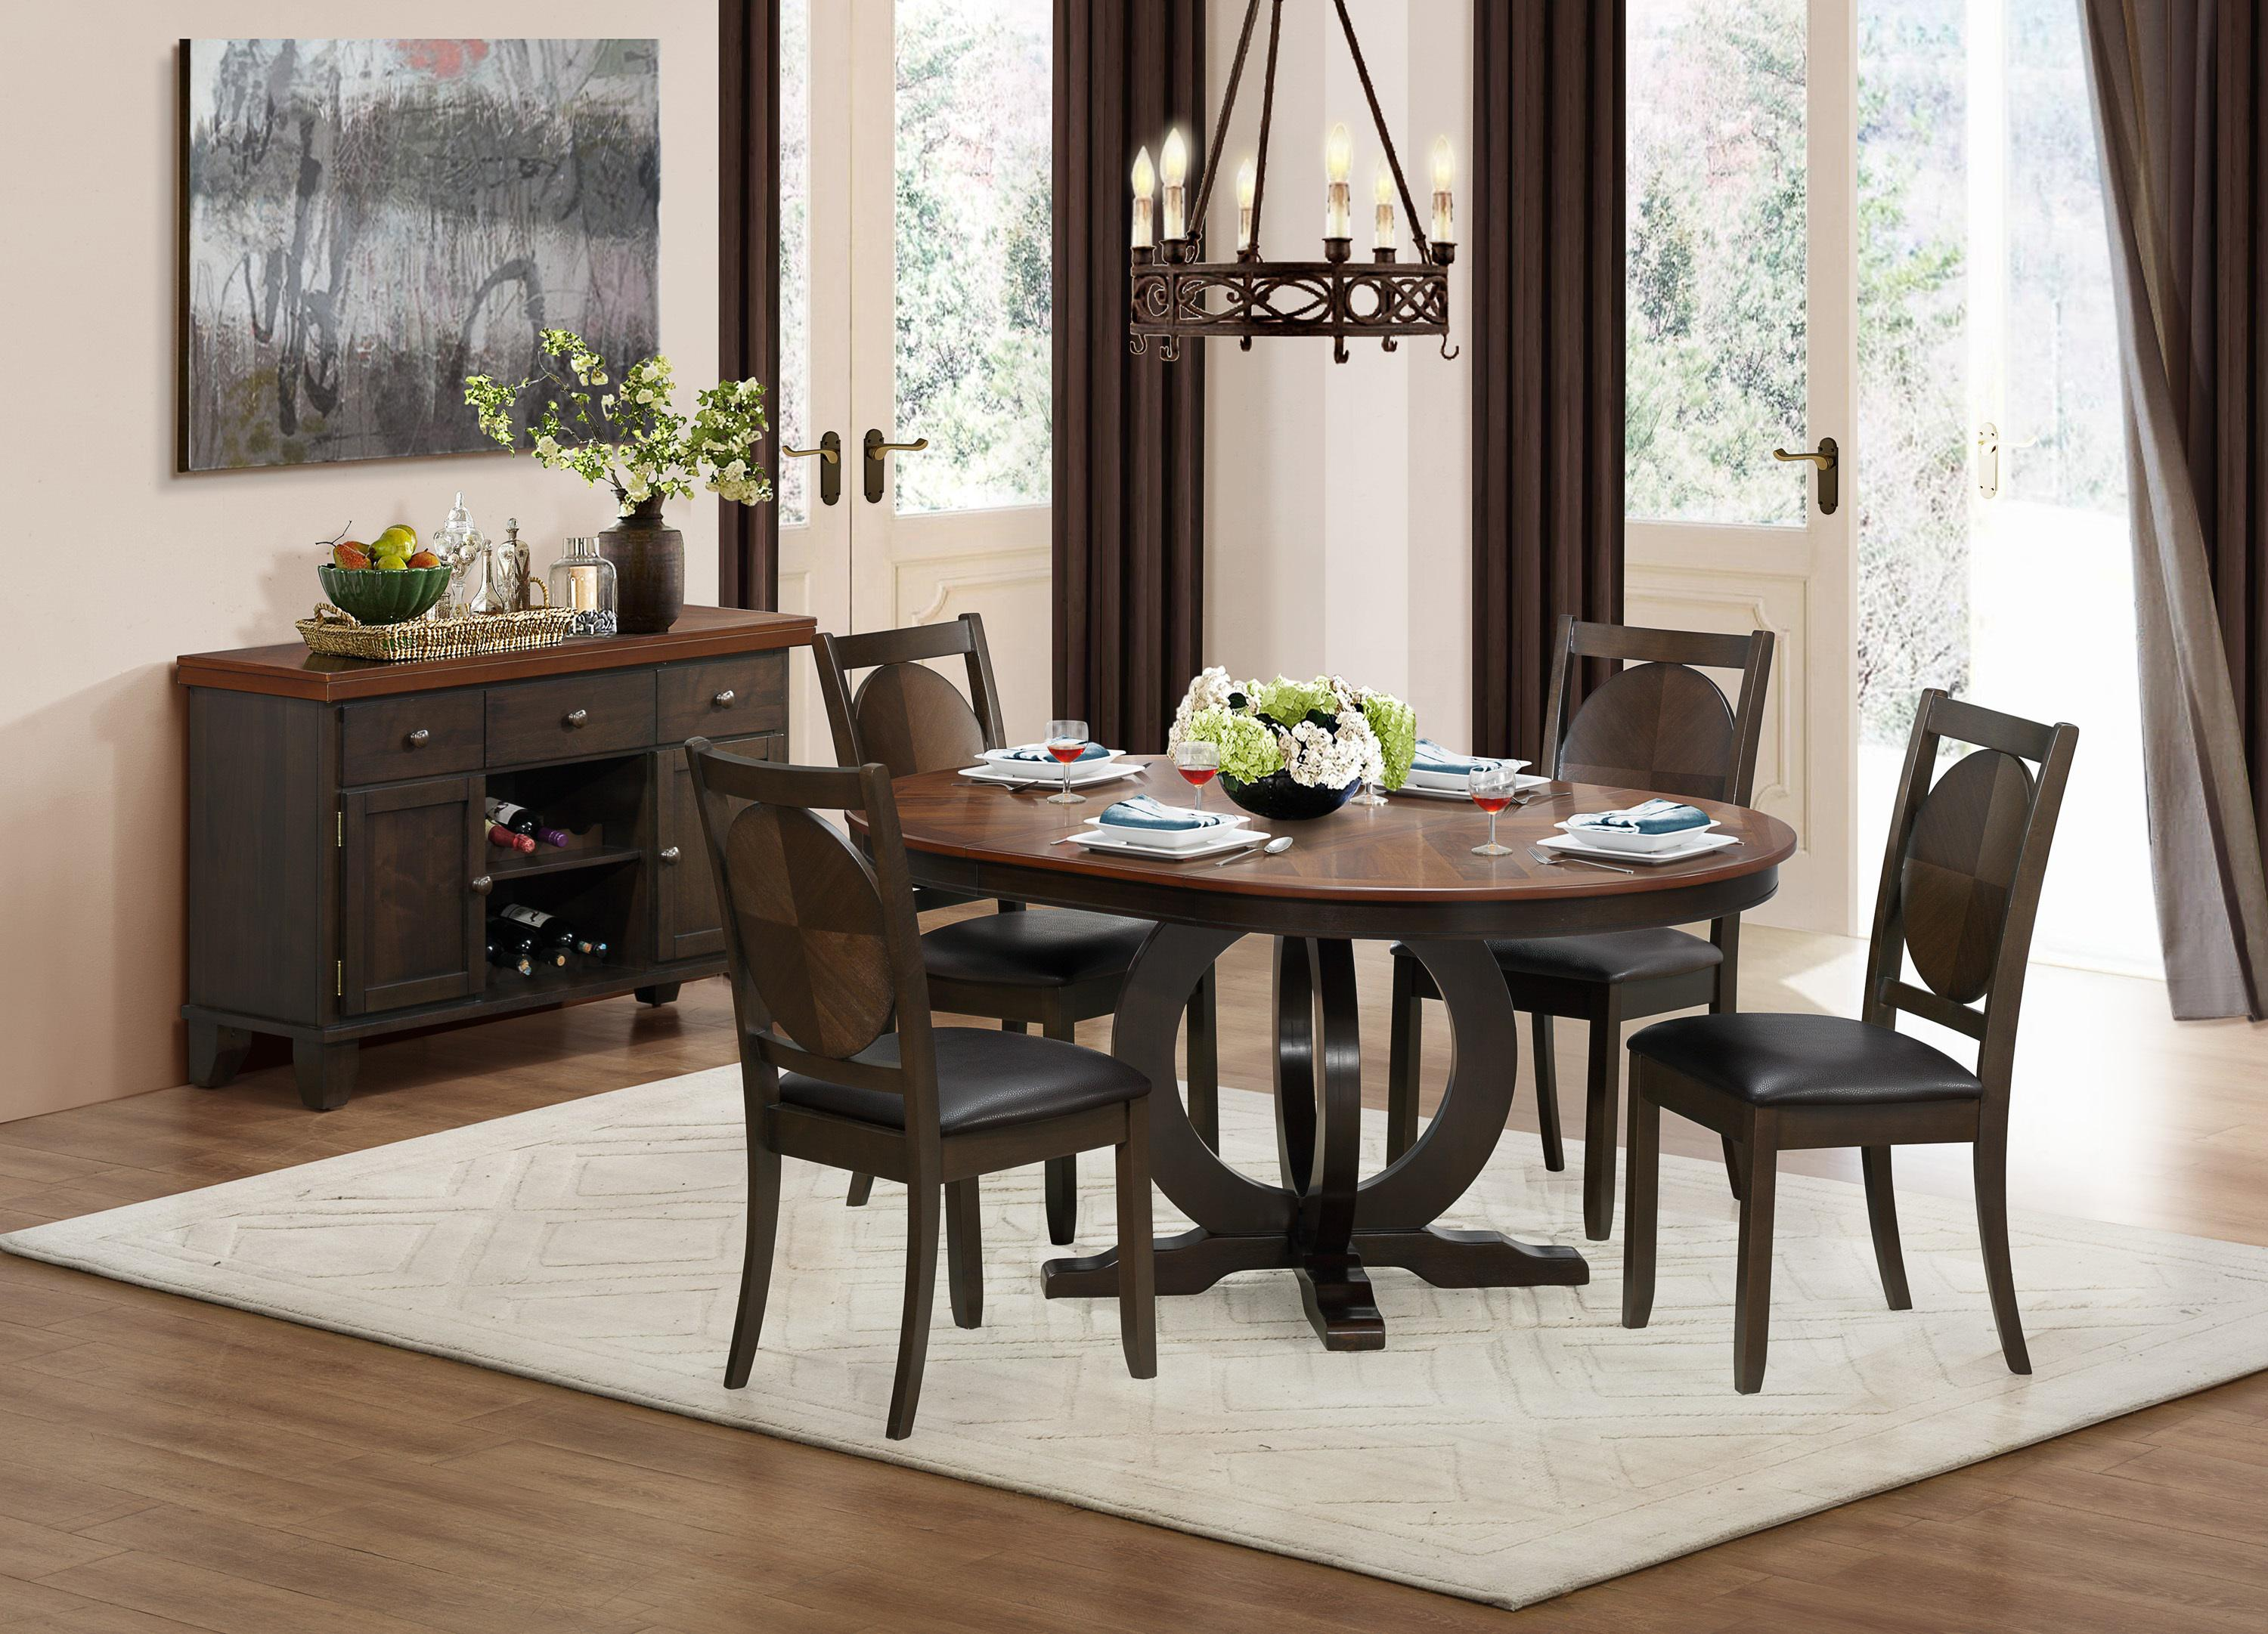 Homelegance 5111 5 Piece Dining Set with Round Table Wayside